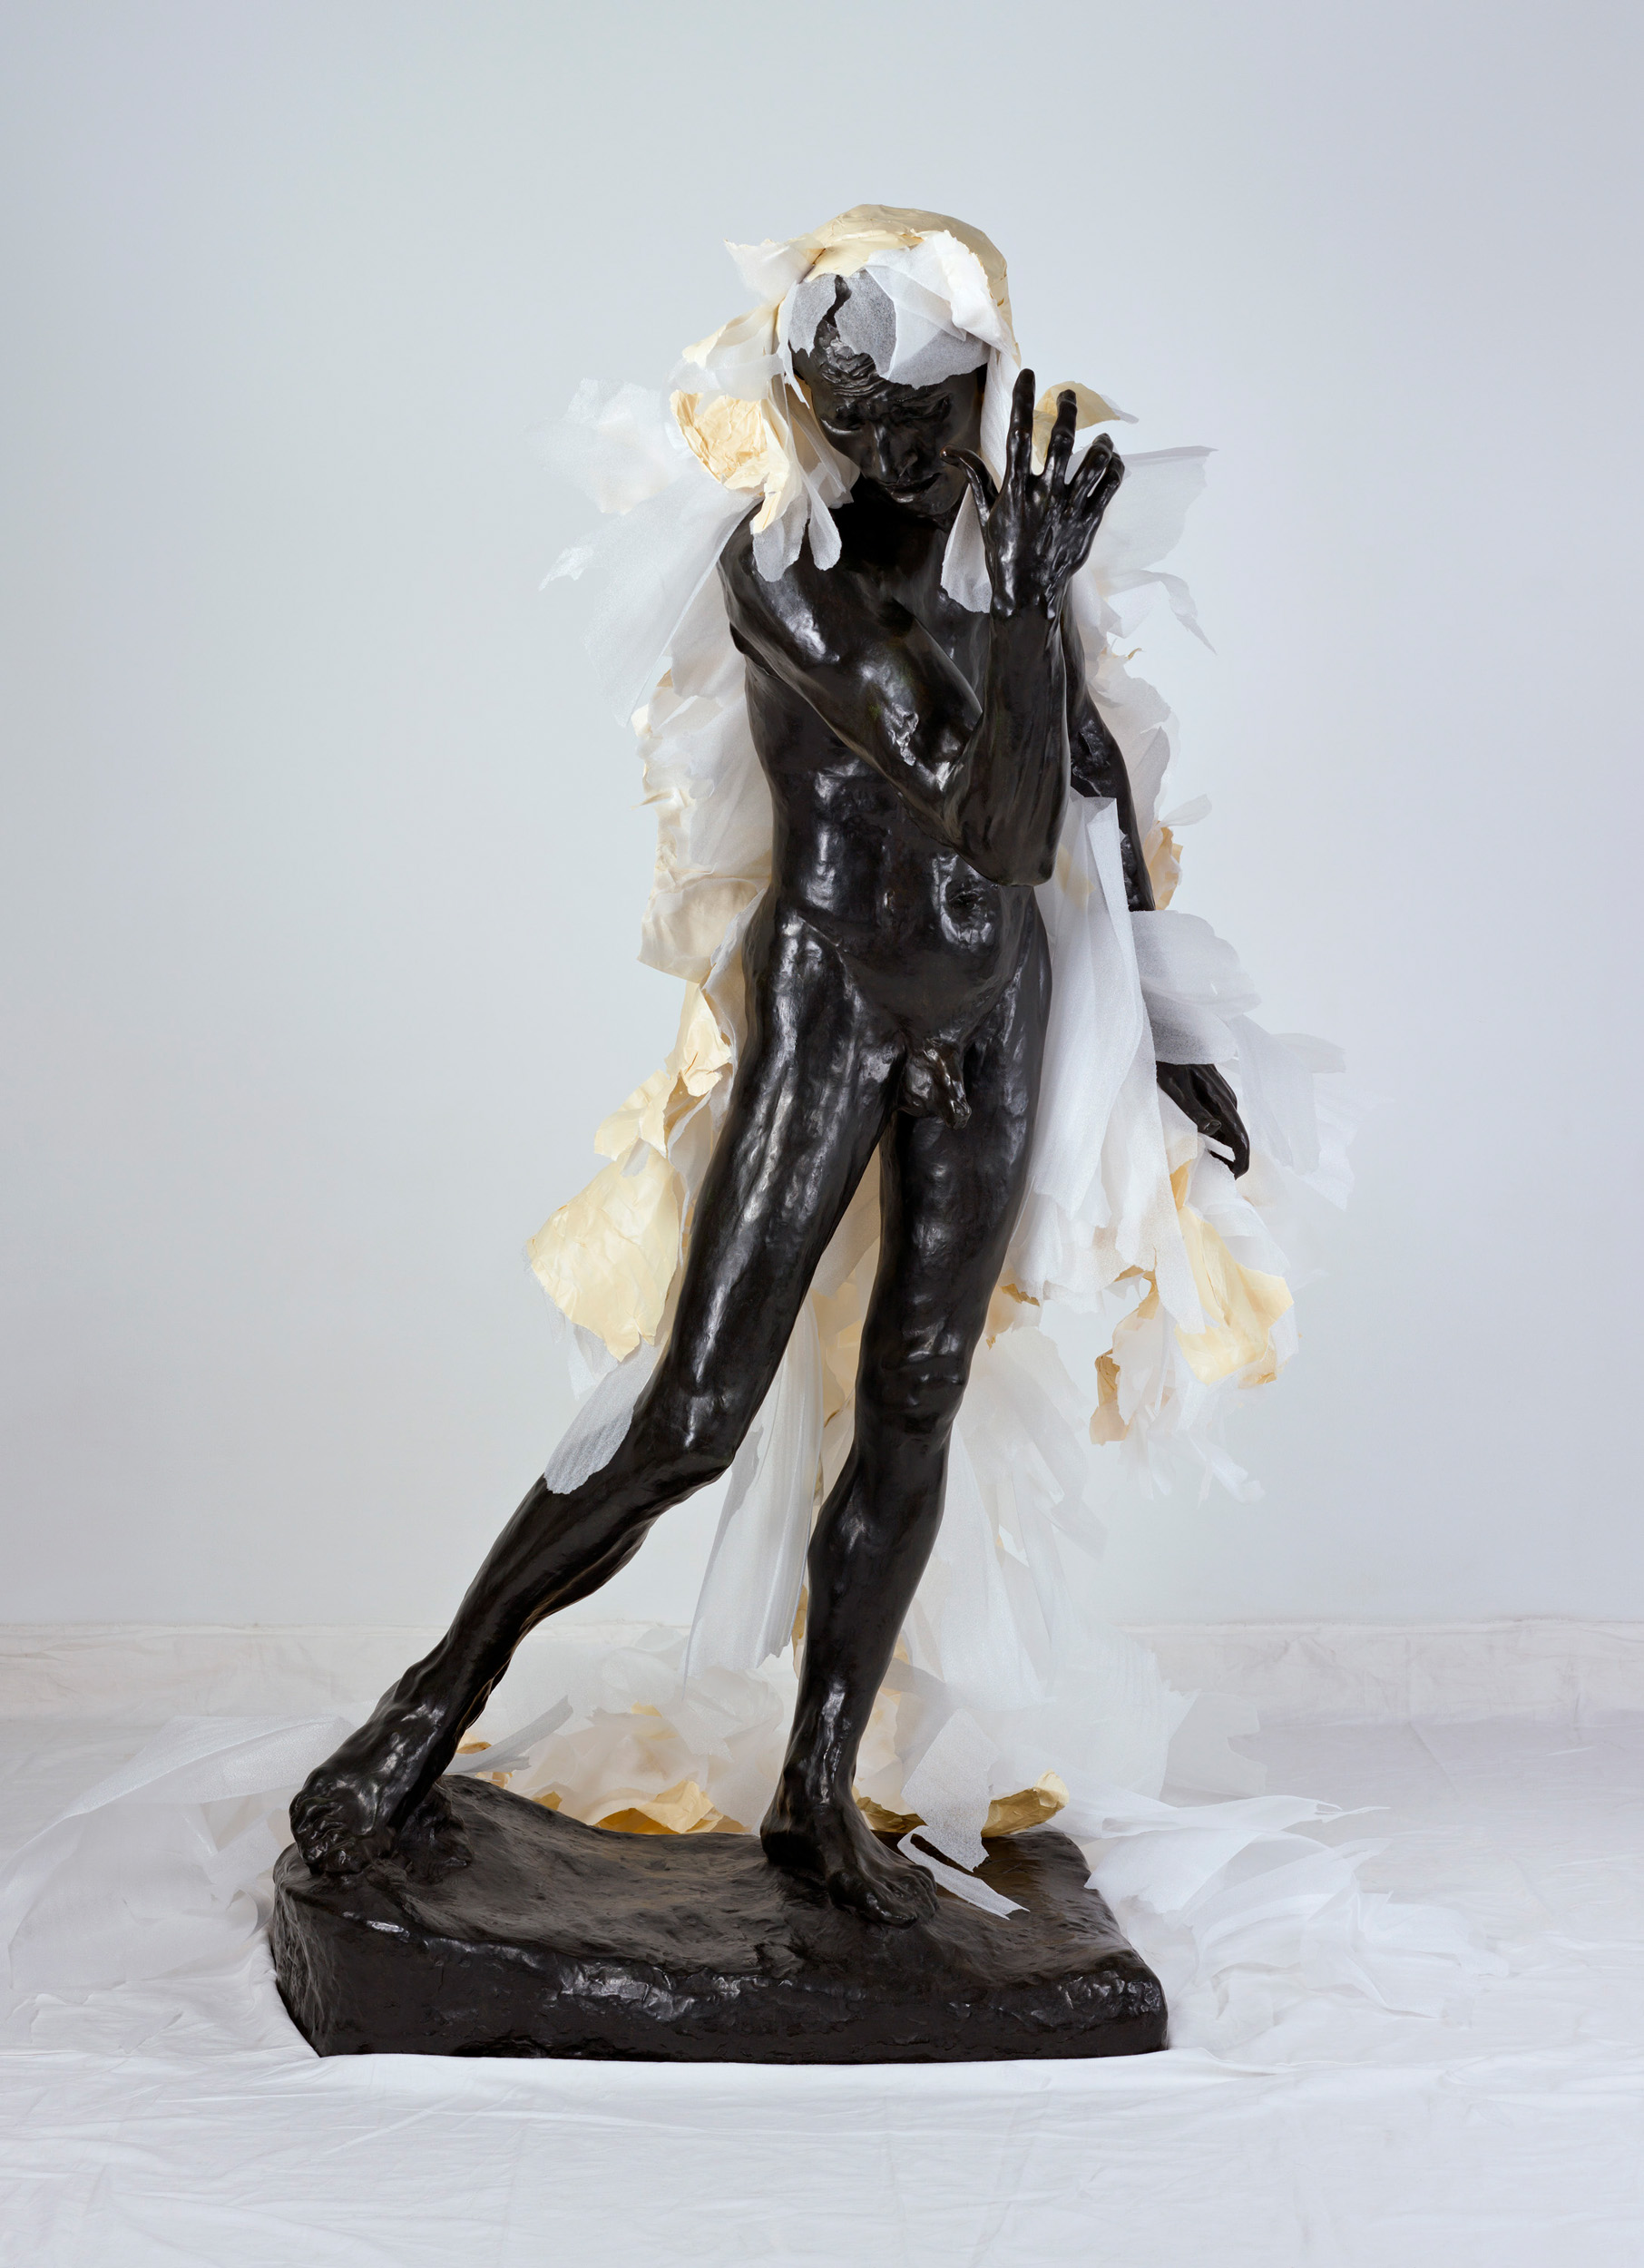 Unwrapping Rodin (White) 7   2010, colour photograph 175 x 127 cm / 69 x 50 in. Edition of 2